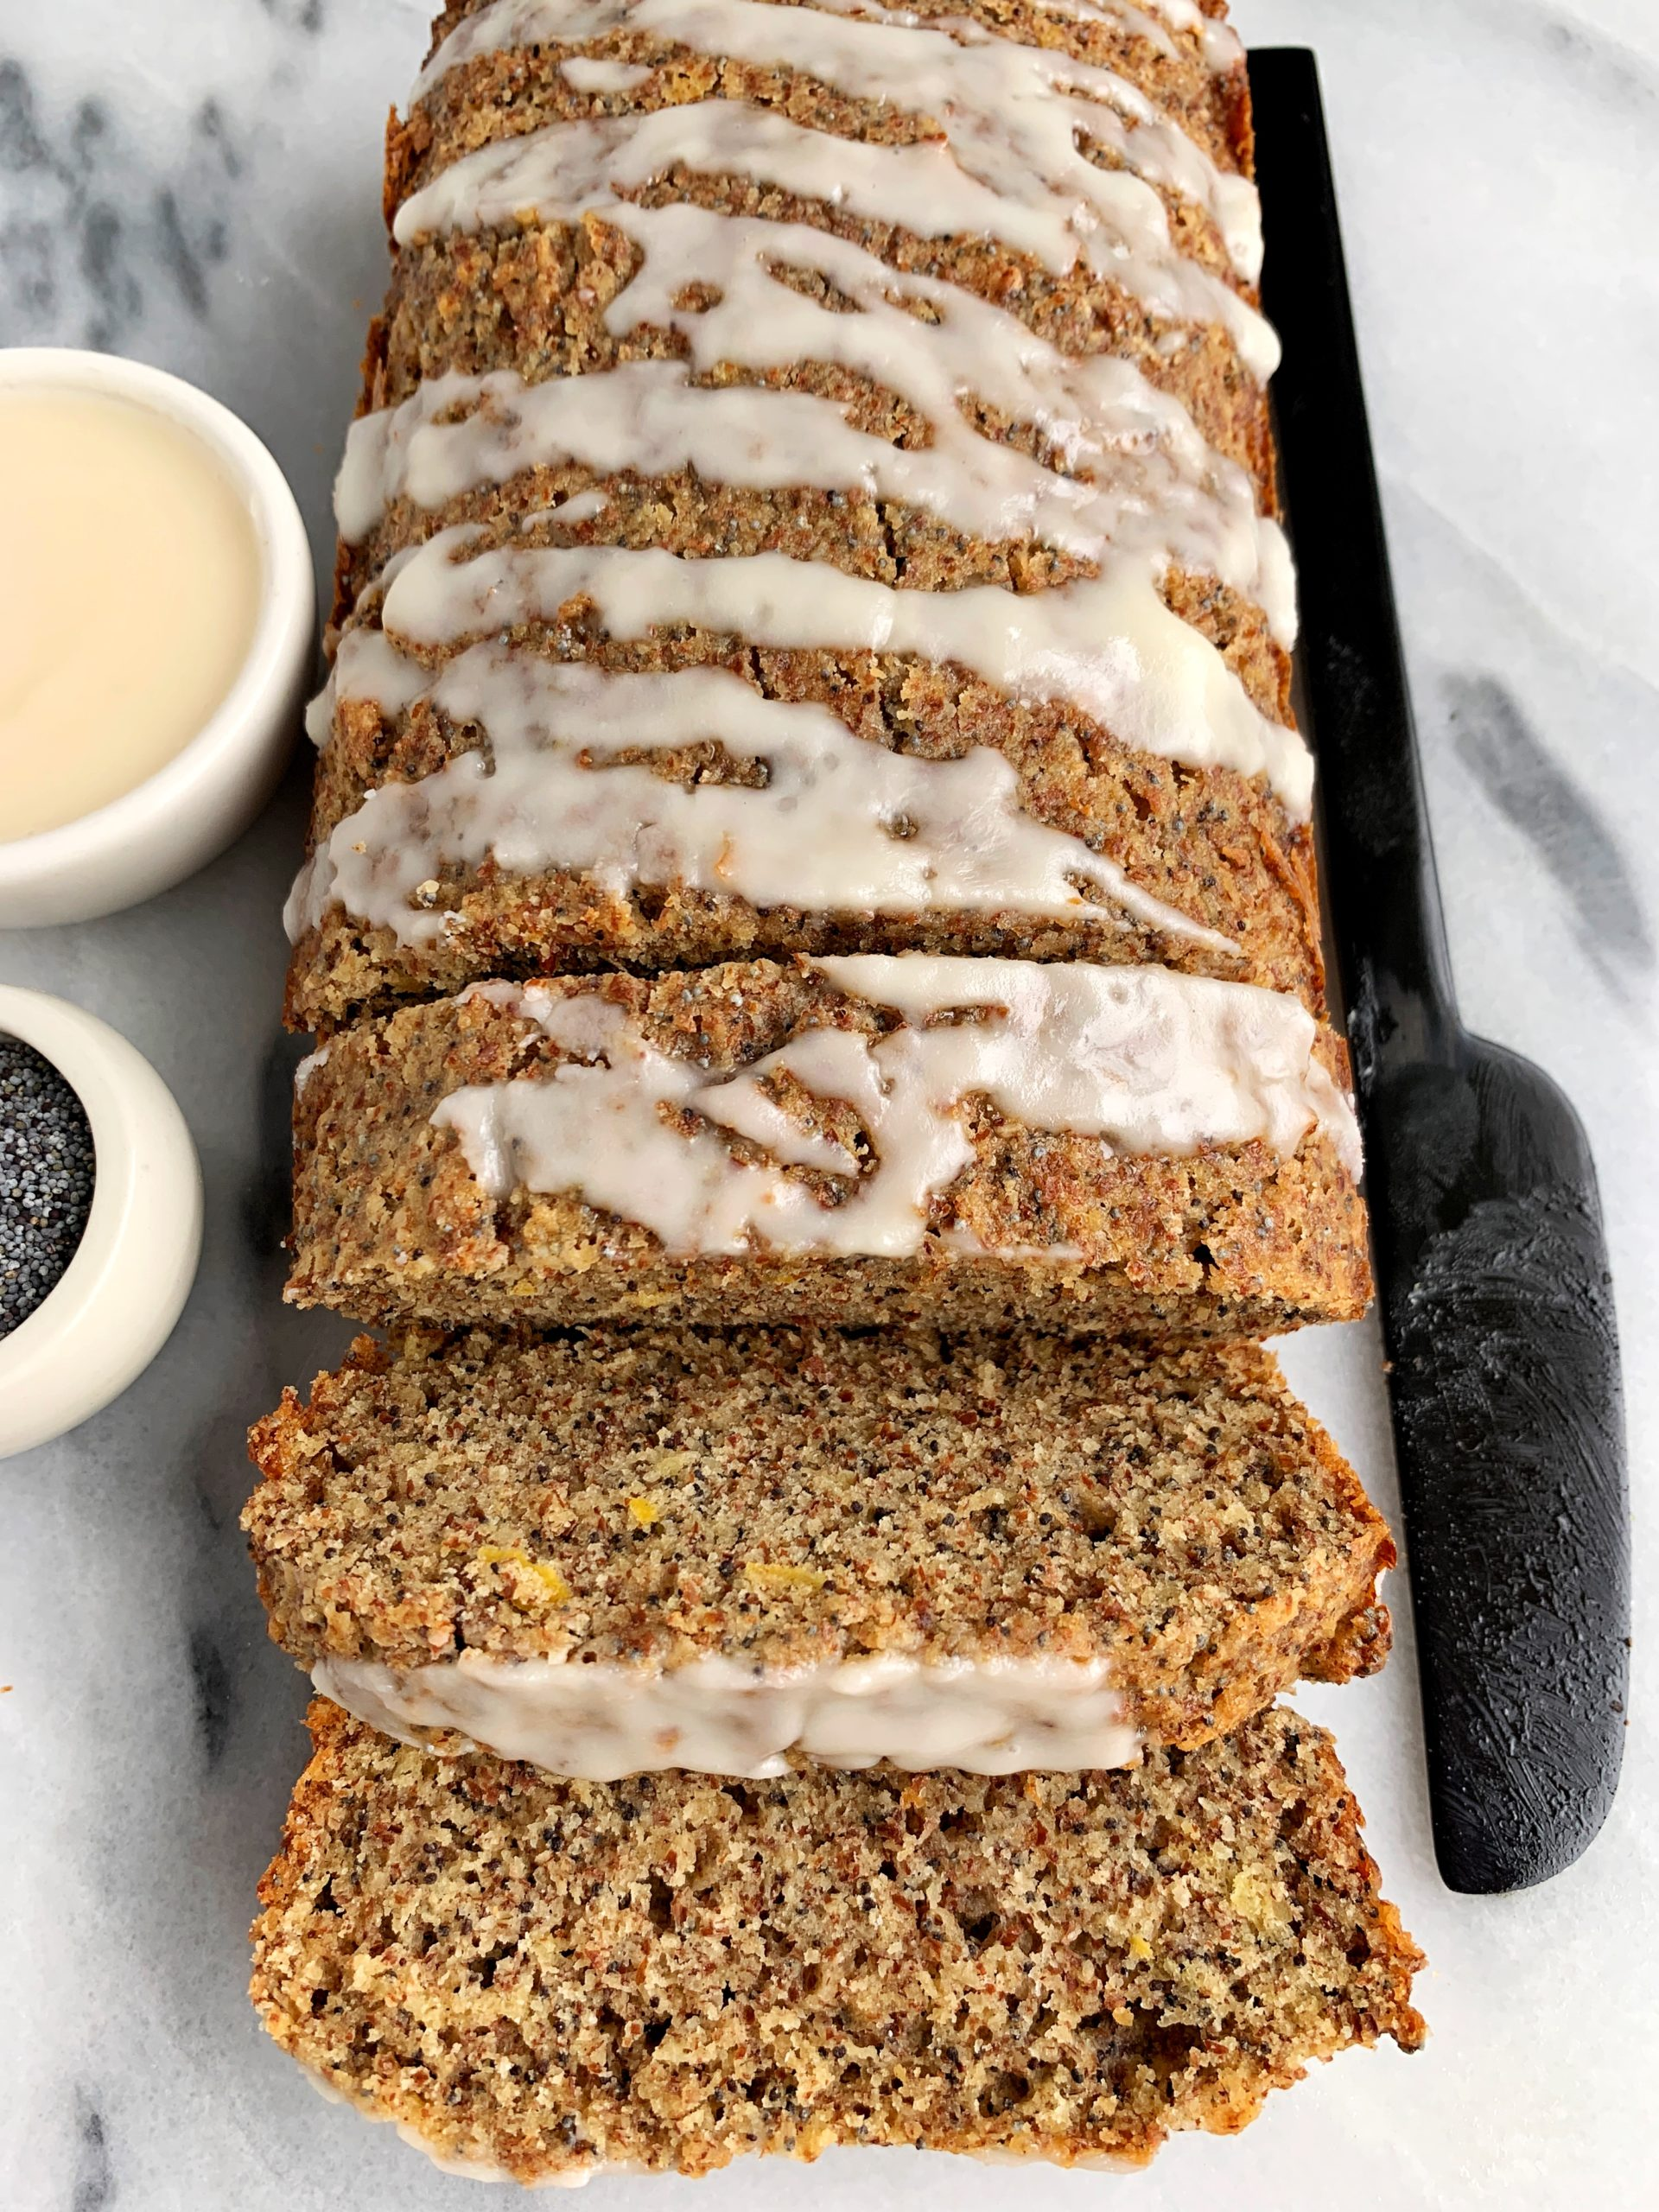 The Best Paleo Lemon Poppyseed Bread made with all gluten-free and dairy-free ingredients. Sweetened with maple syrup and glazed with a little coconut butter on top.